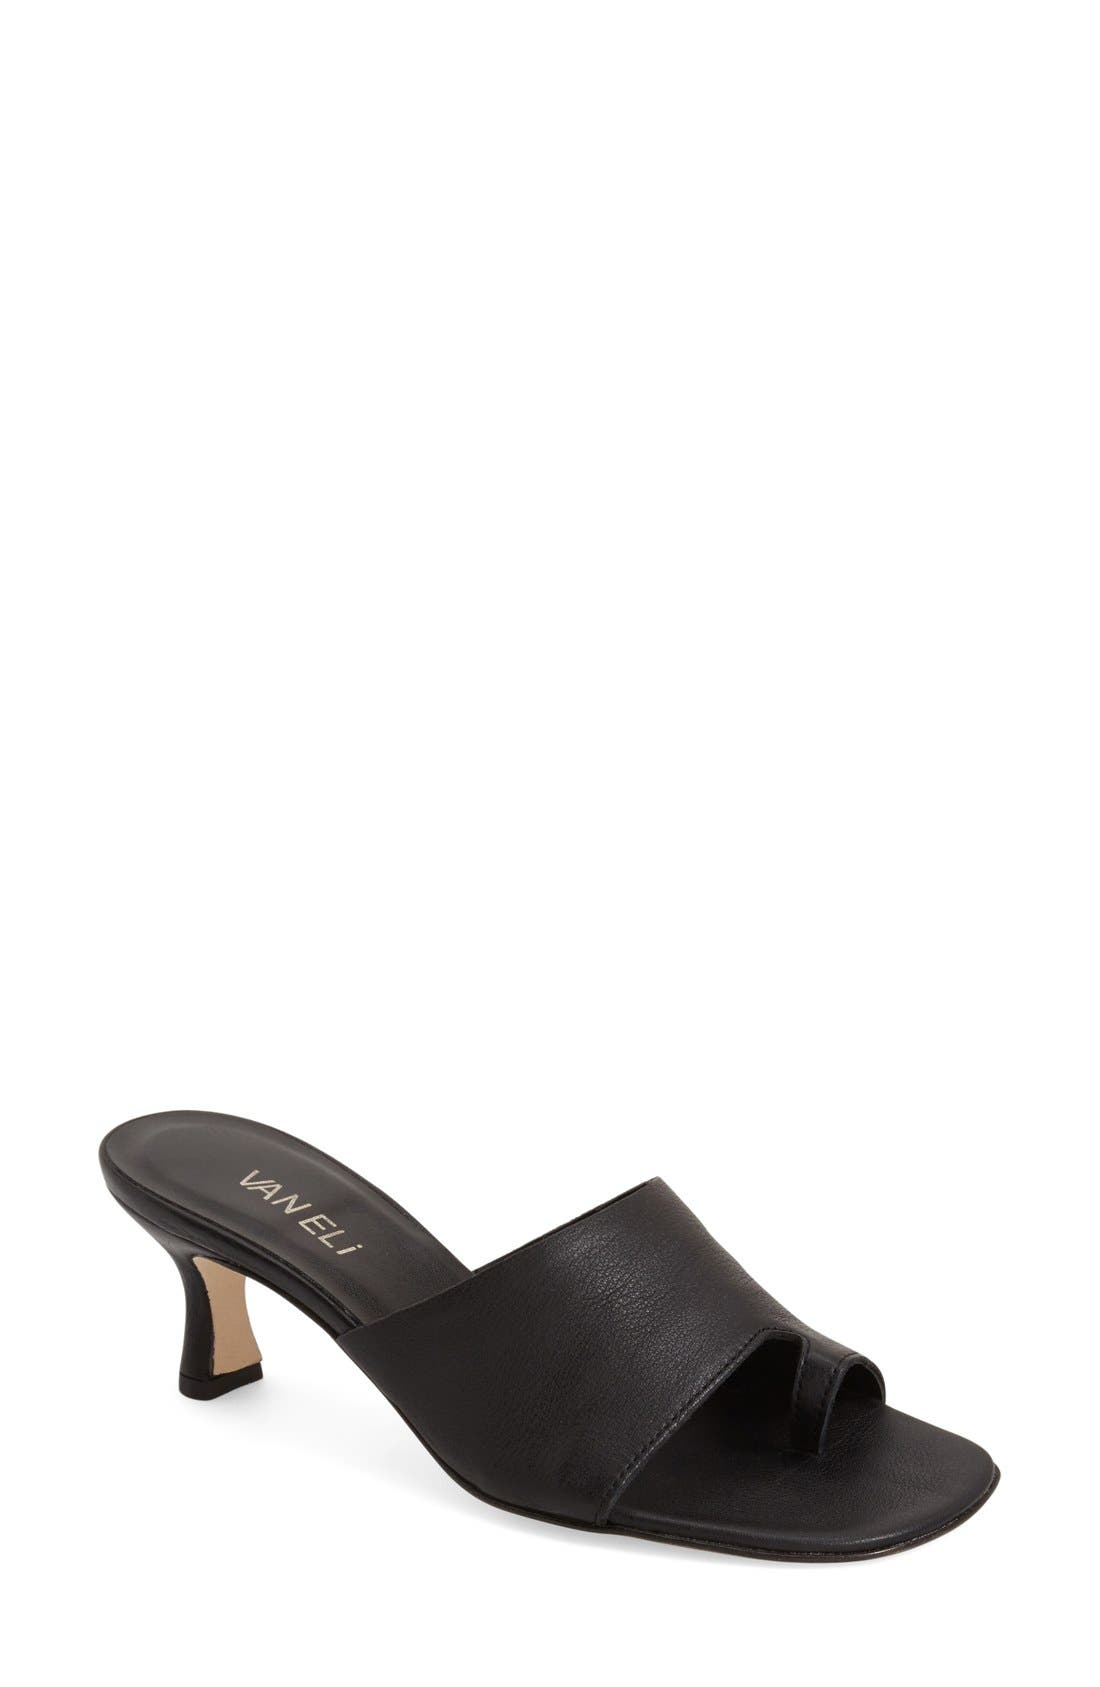 'Melea' Slide Sandal,                         Main,                         color, Black Sweta Calf